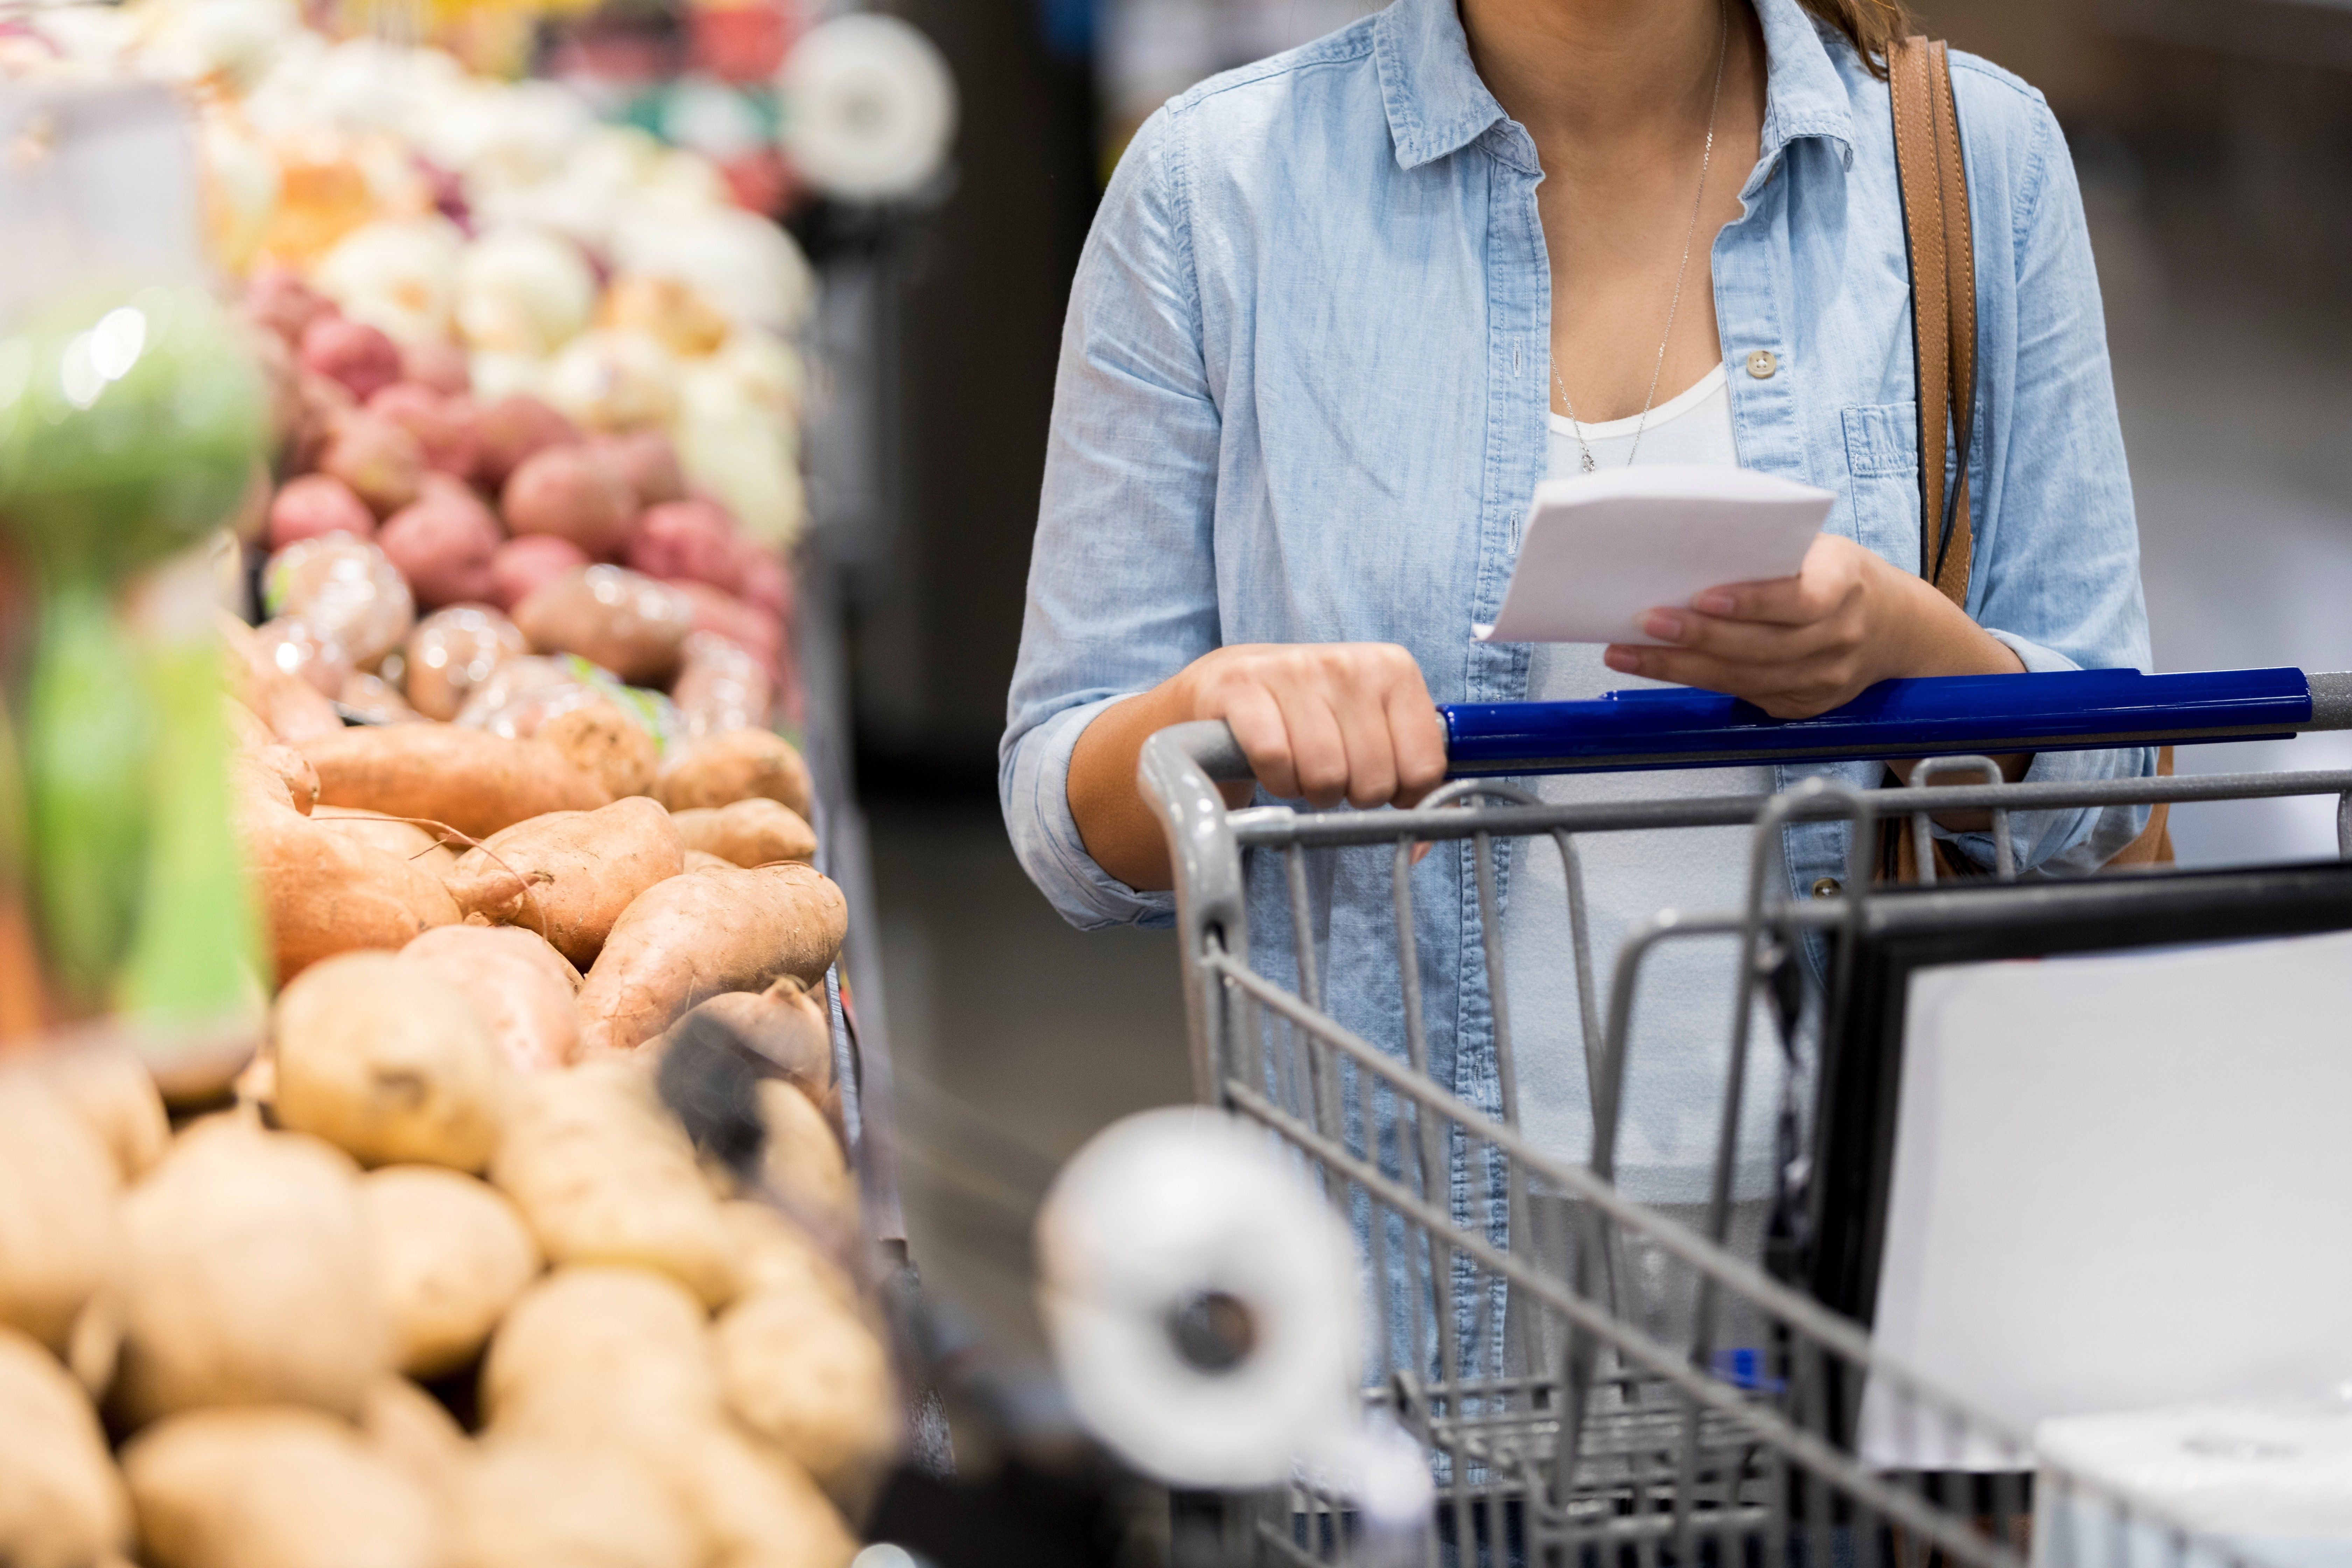 12 Things Supermarkets Aren't Cleaning As They Should